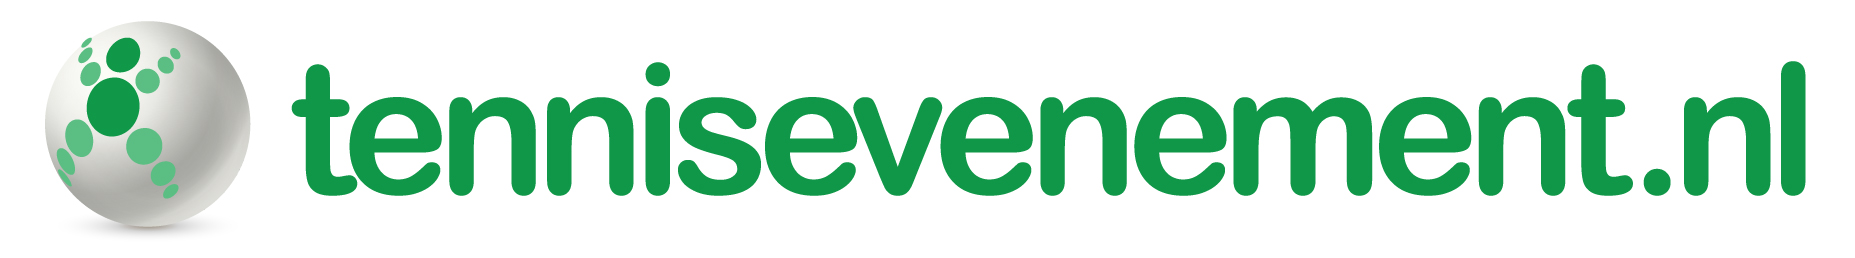 tennisevenement-logo.jpg